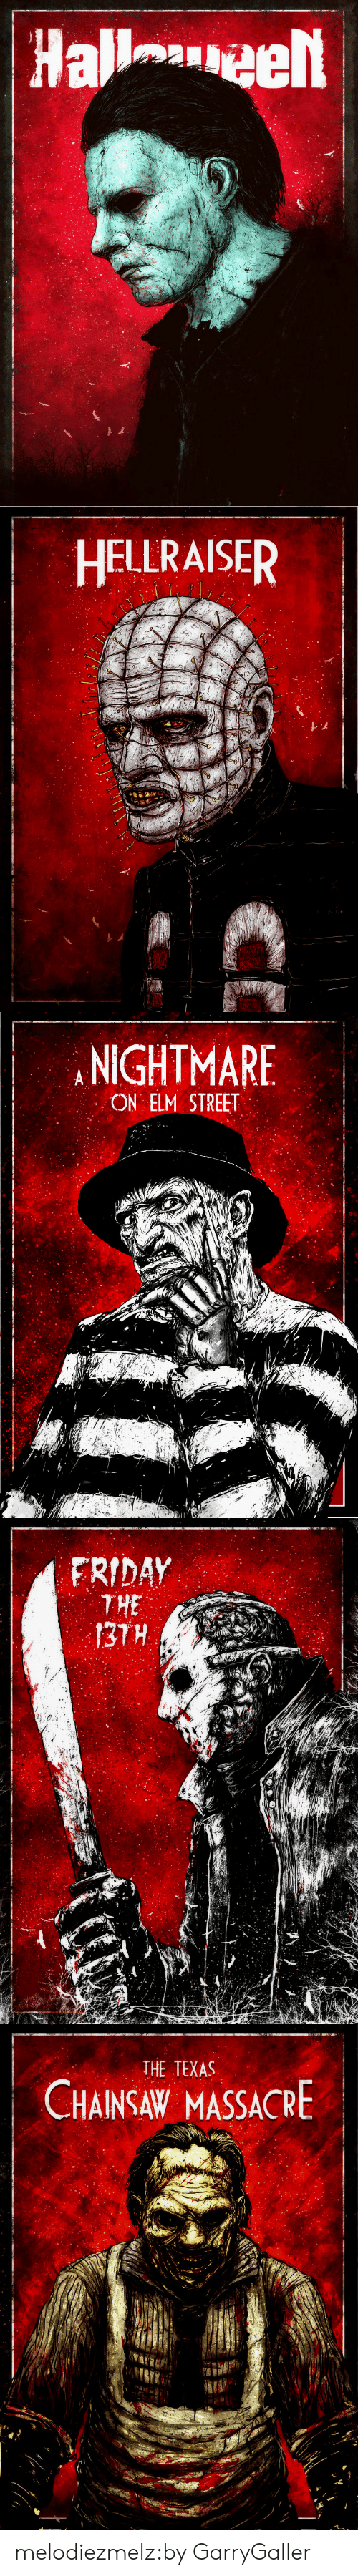 Friday, Tumblr, and Blog: HELLRAISER   NIGHTMARE  ON ELM STREET   FRIDAY  THE   THE TEXAS  CHAINSAW MASSACRE melodiezmelz:by GarryGaller